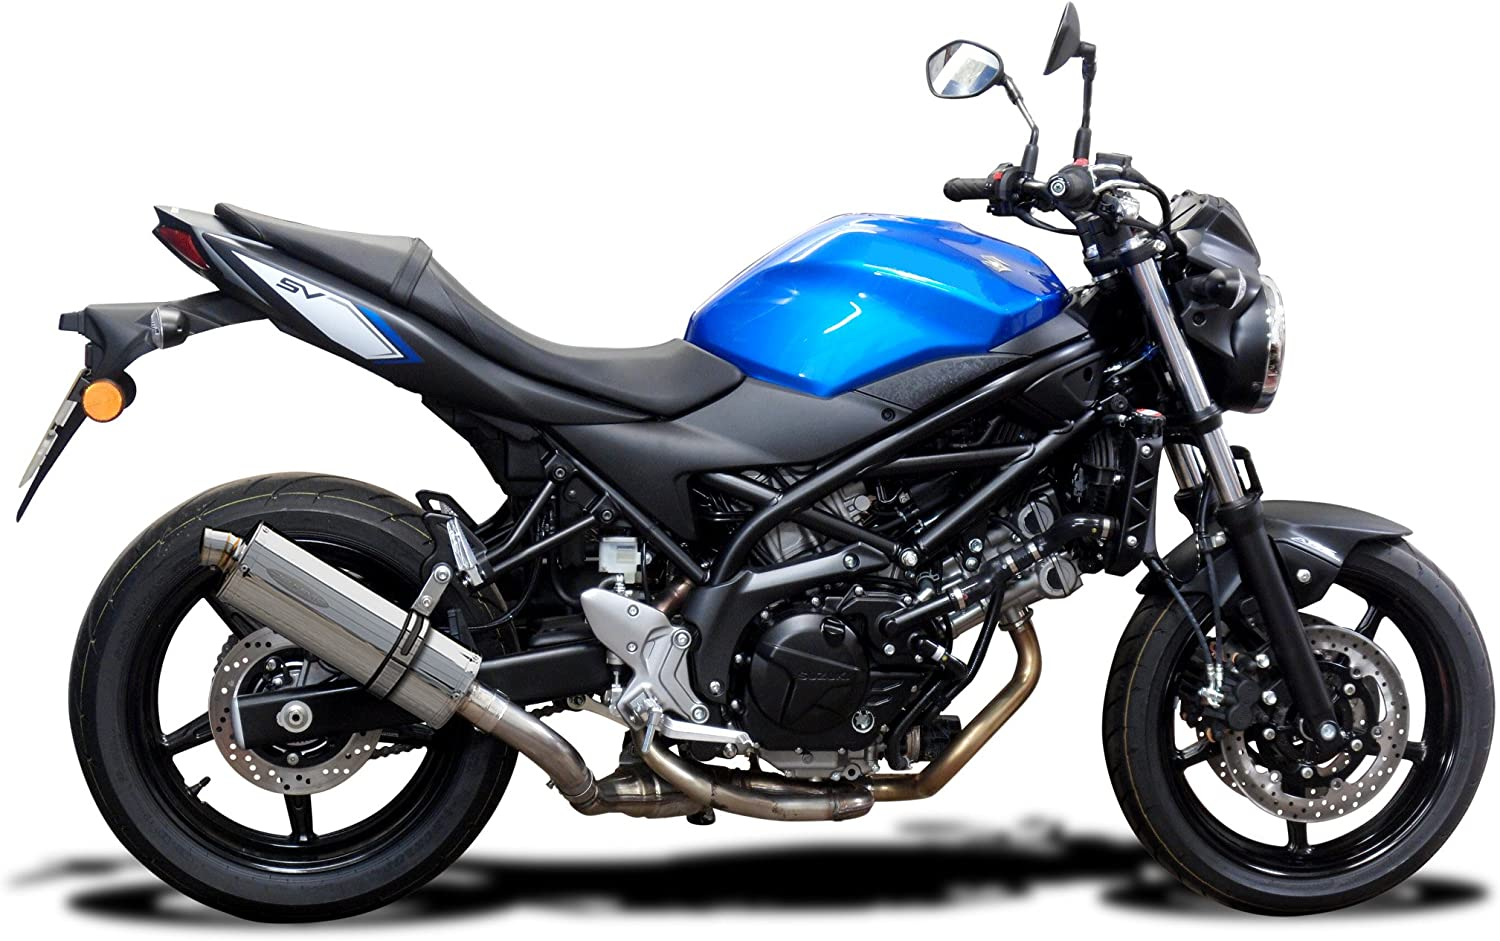 Delkevic Aftermarket Slip On compatible with Suzuki SV650 Stubby 14 Stainless Steel Oval Muffler Exhaust 17-20